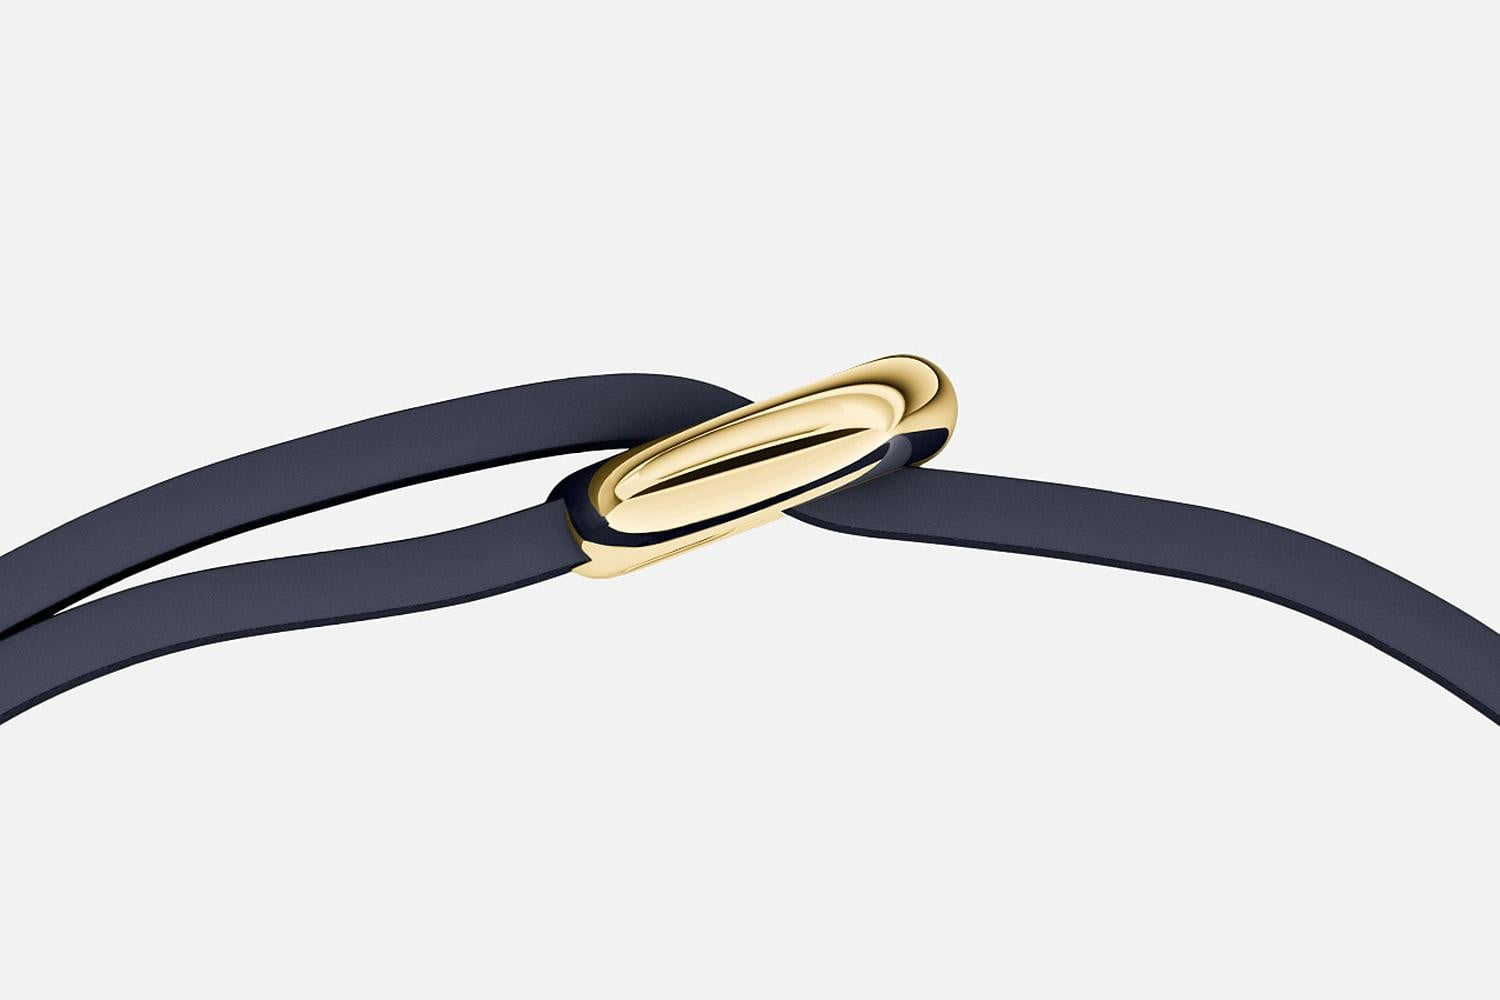 apple watch release news edition yellow gold blue clasp